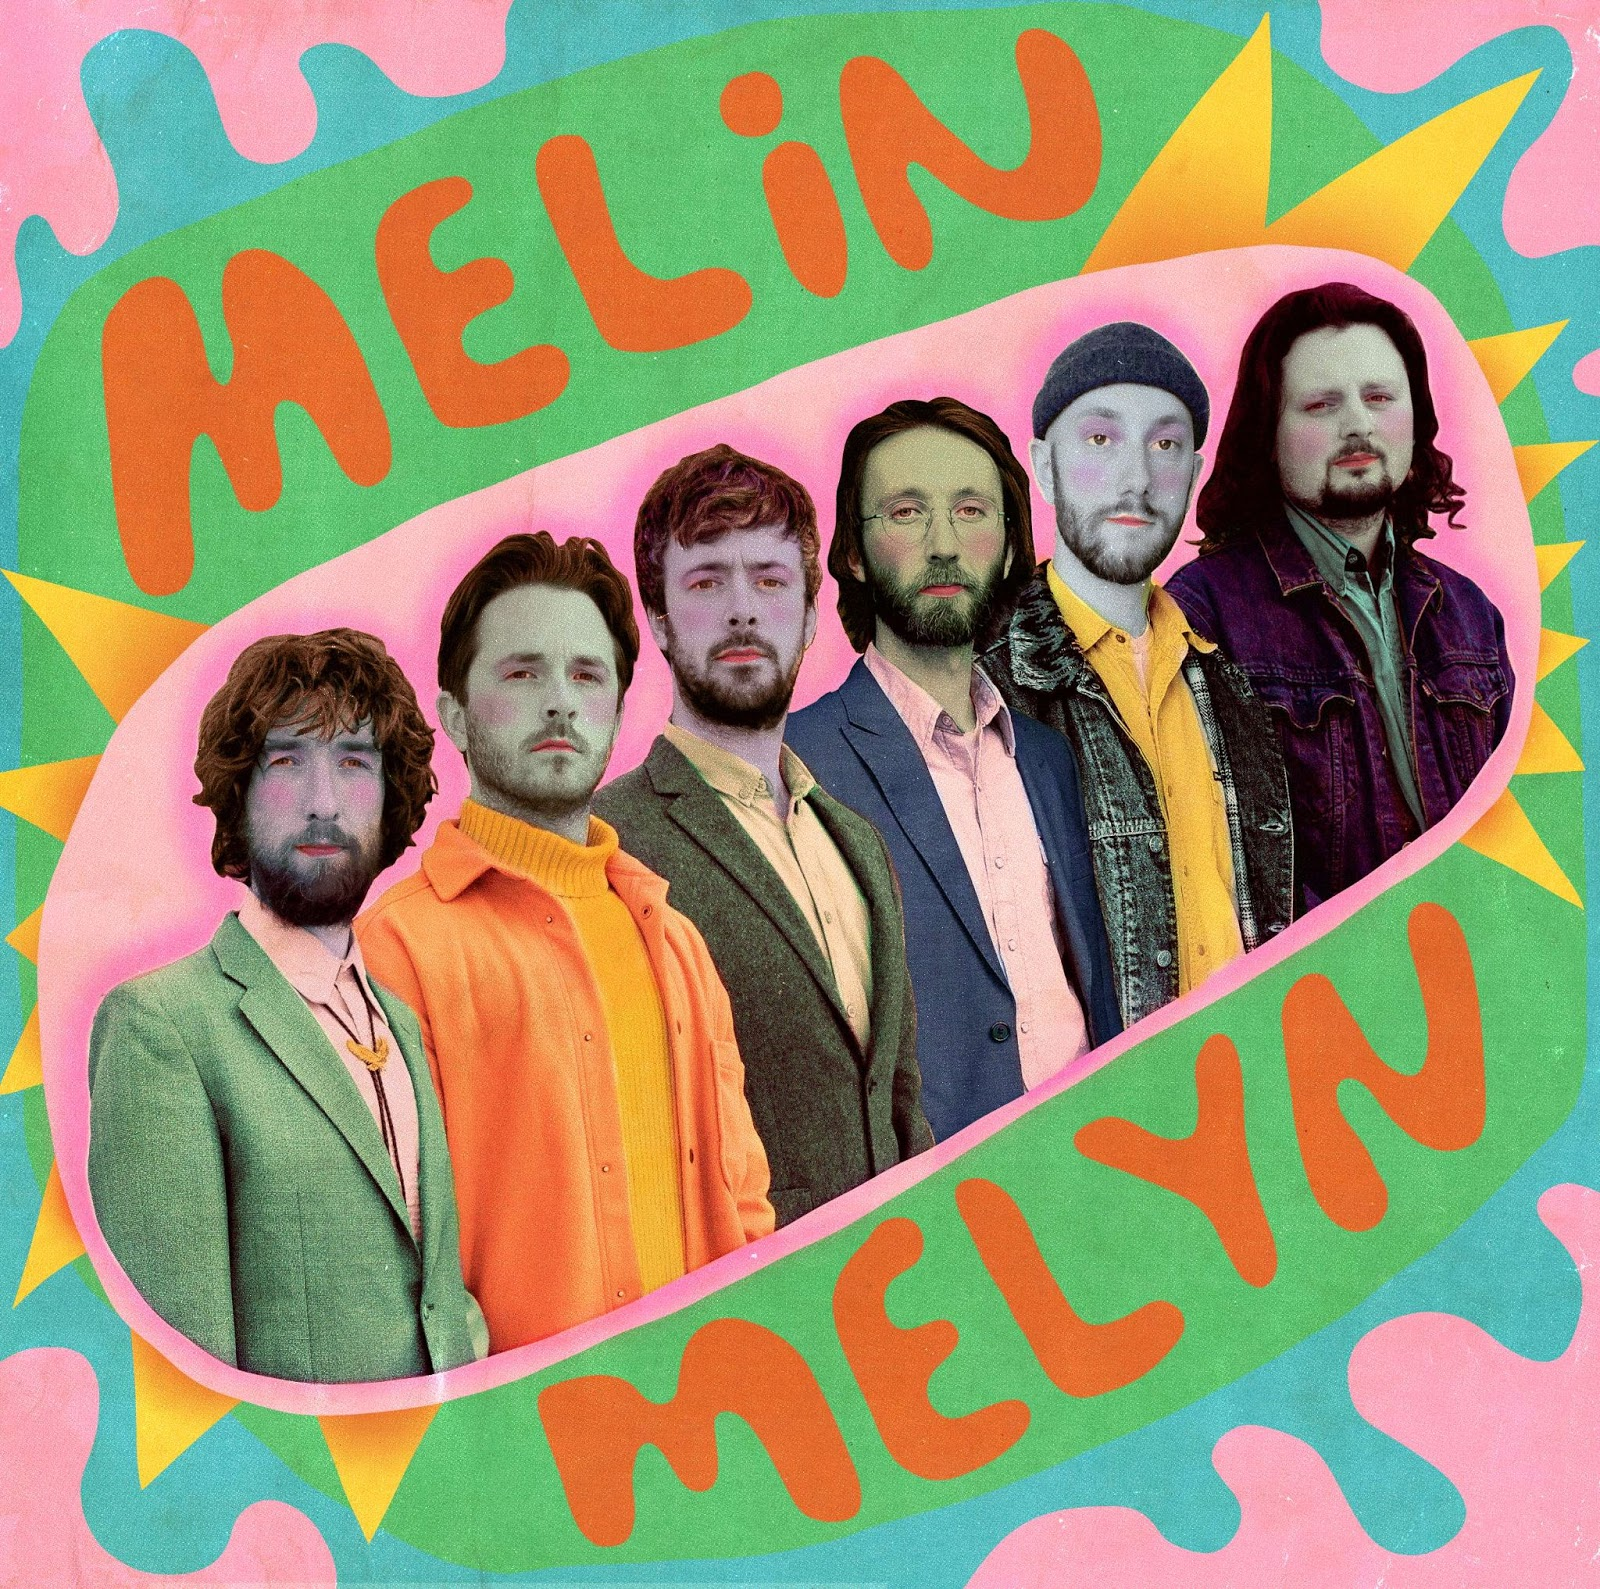 NEWS: Melin Melyn share surf soundtrack to a heatwave 'Dewin Dwl' from forthcoming EP